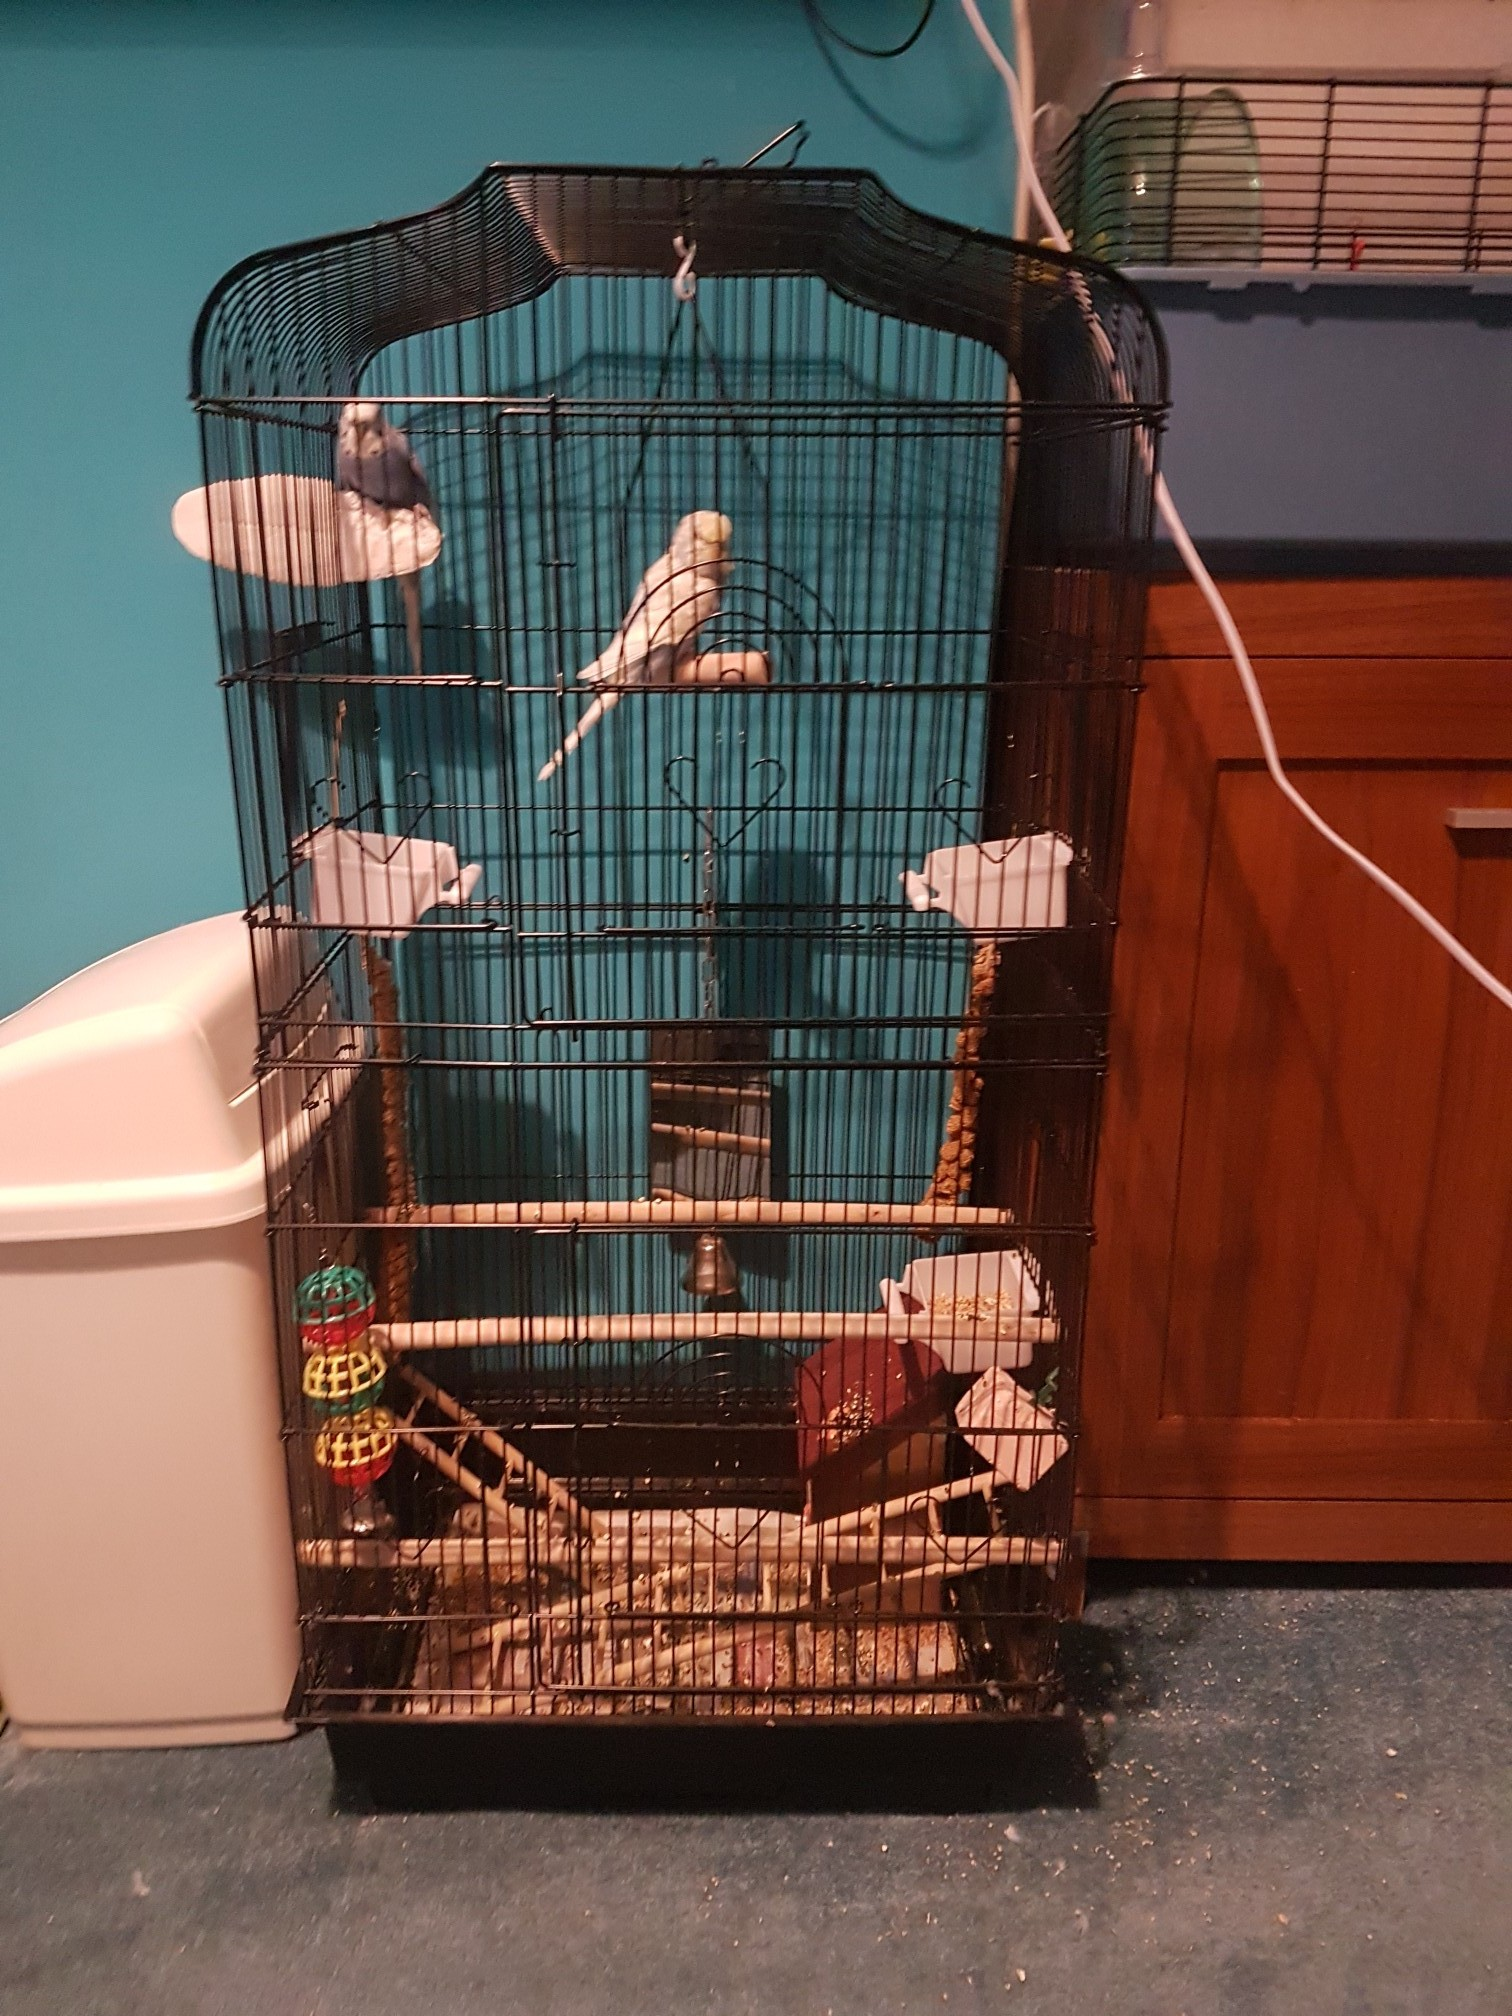 with rest of food millet and food bowls and accessories they are around 6 month old so good age to be fully hand trained one budgies has hurt it s